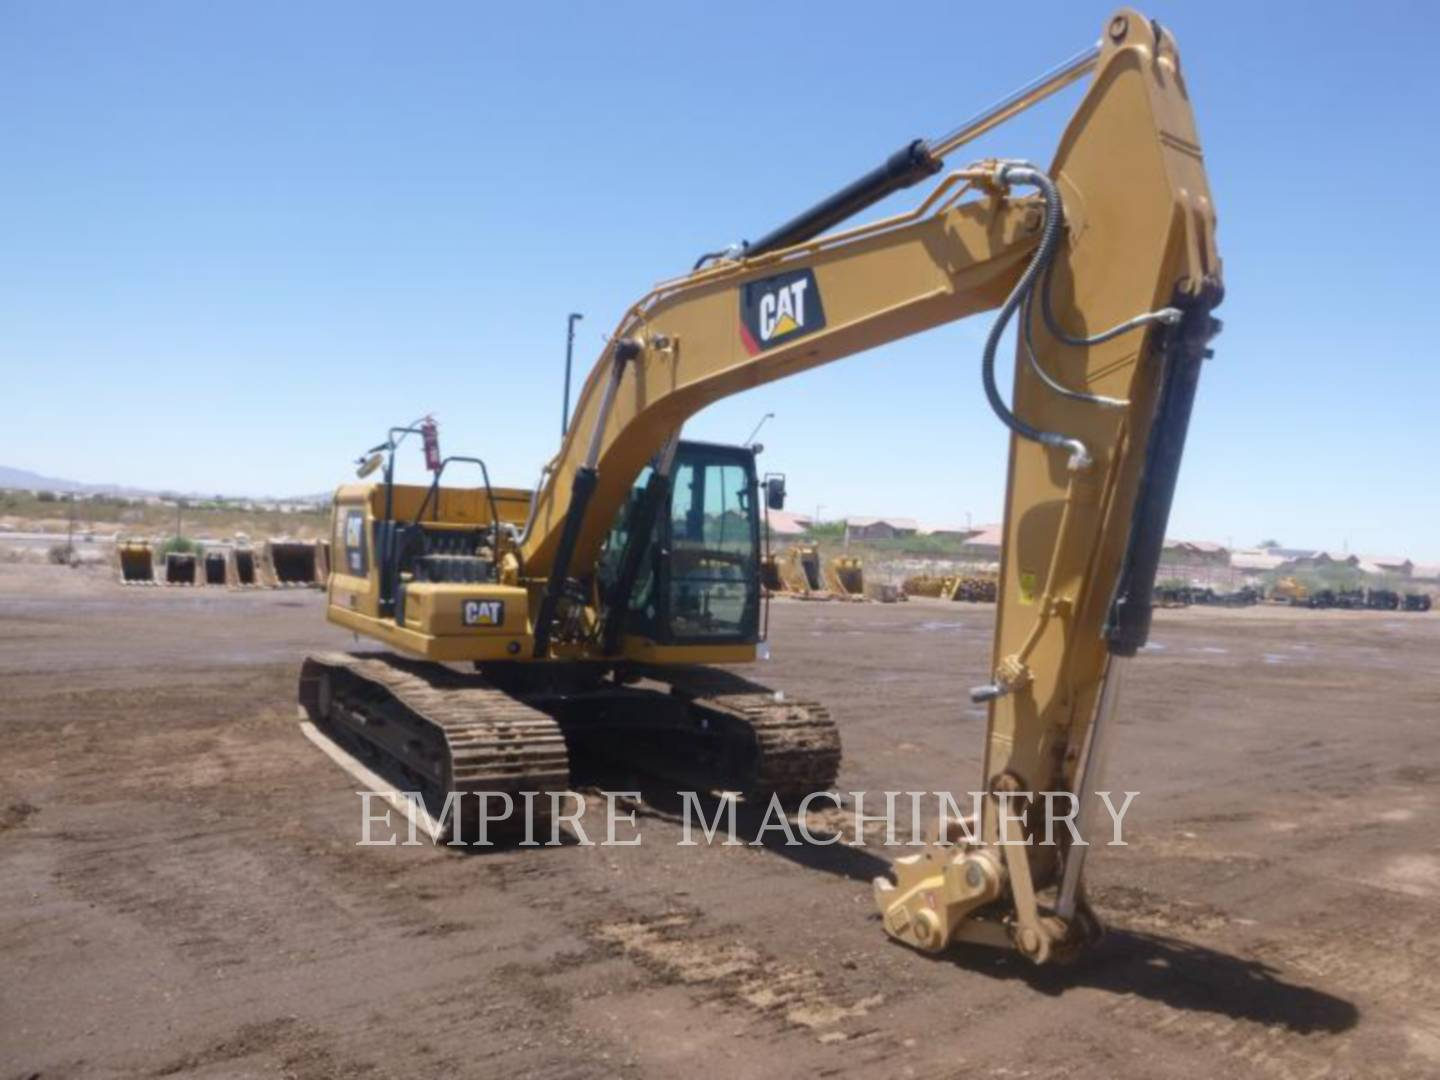 2018 Caterpillar 320-07 P Excavator for sale in MESA, AZ | IronSearch